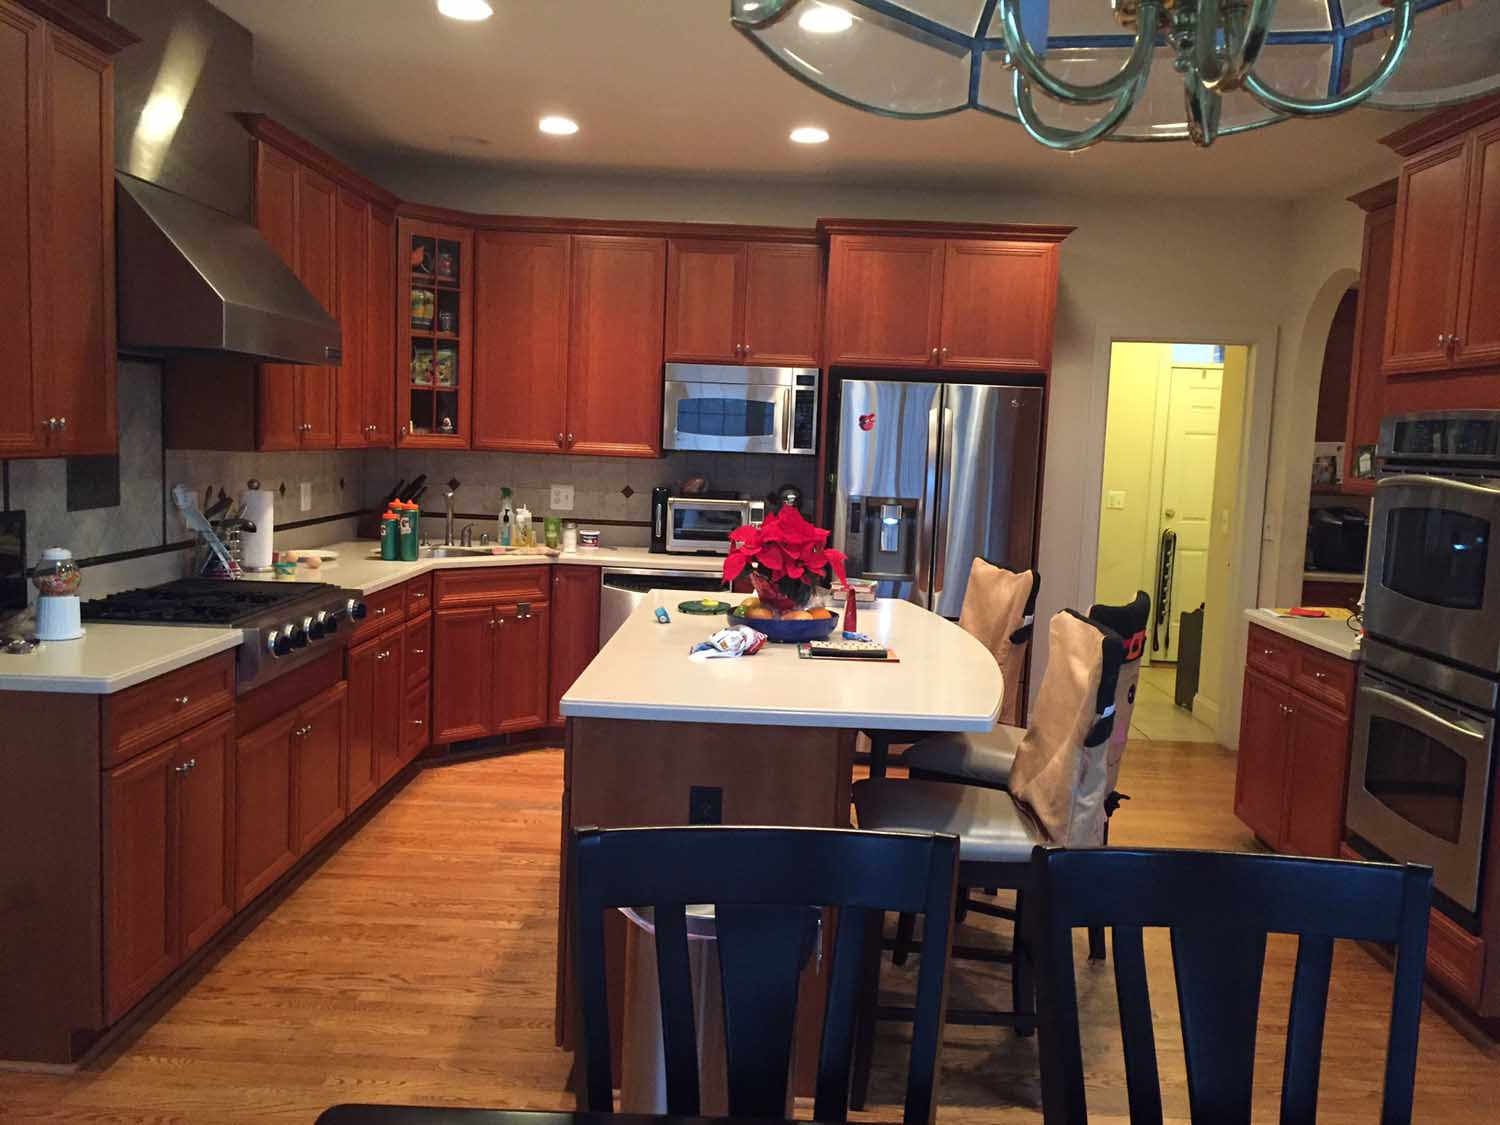 Howard County Maryland Transitional Kitchen Remodel Before 3 – Designer Bestie April Force Pardoe Interiors.jpg